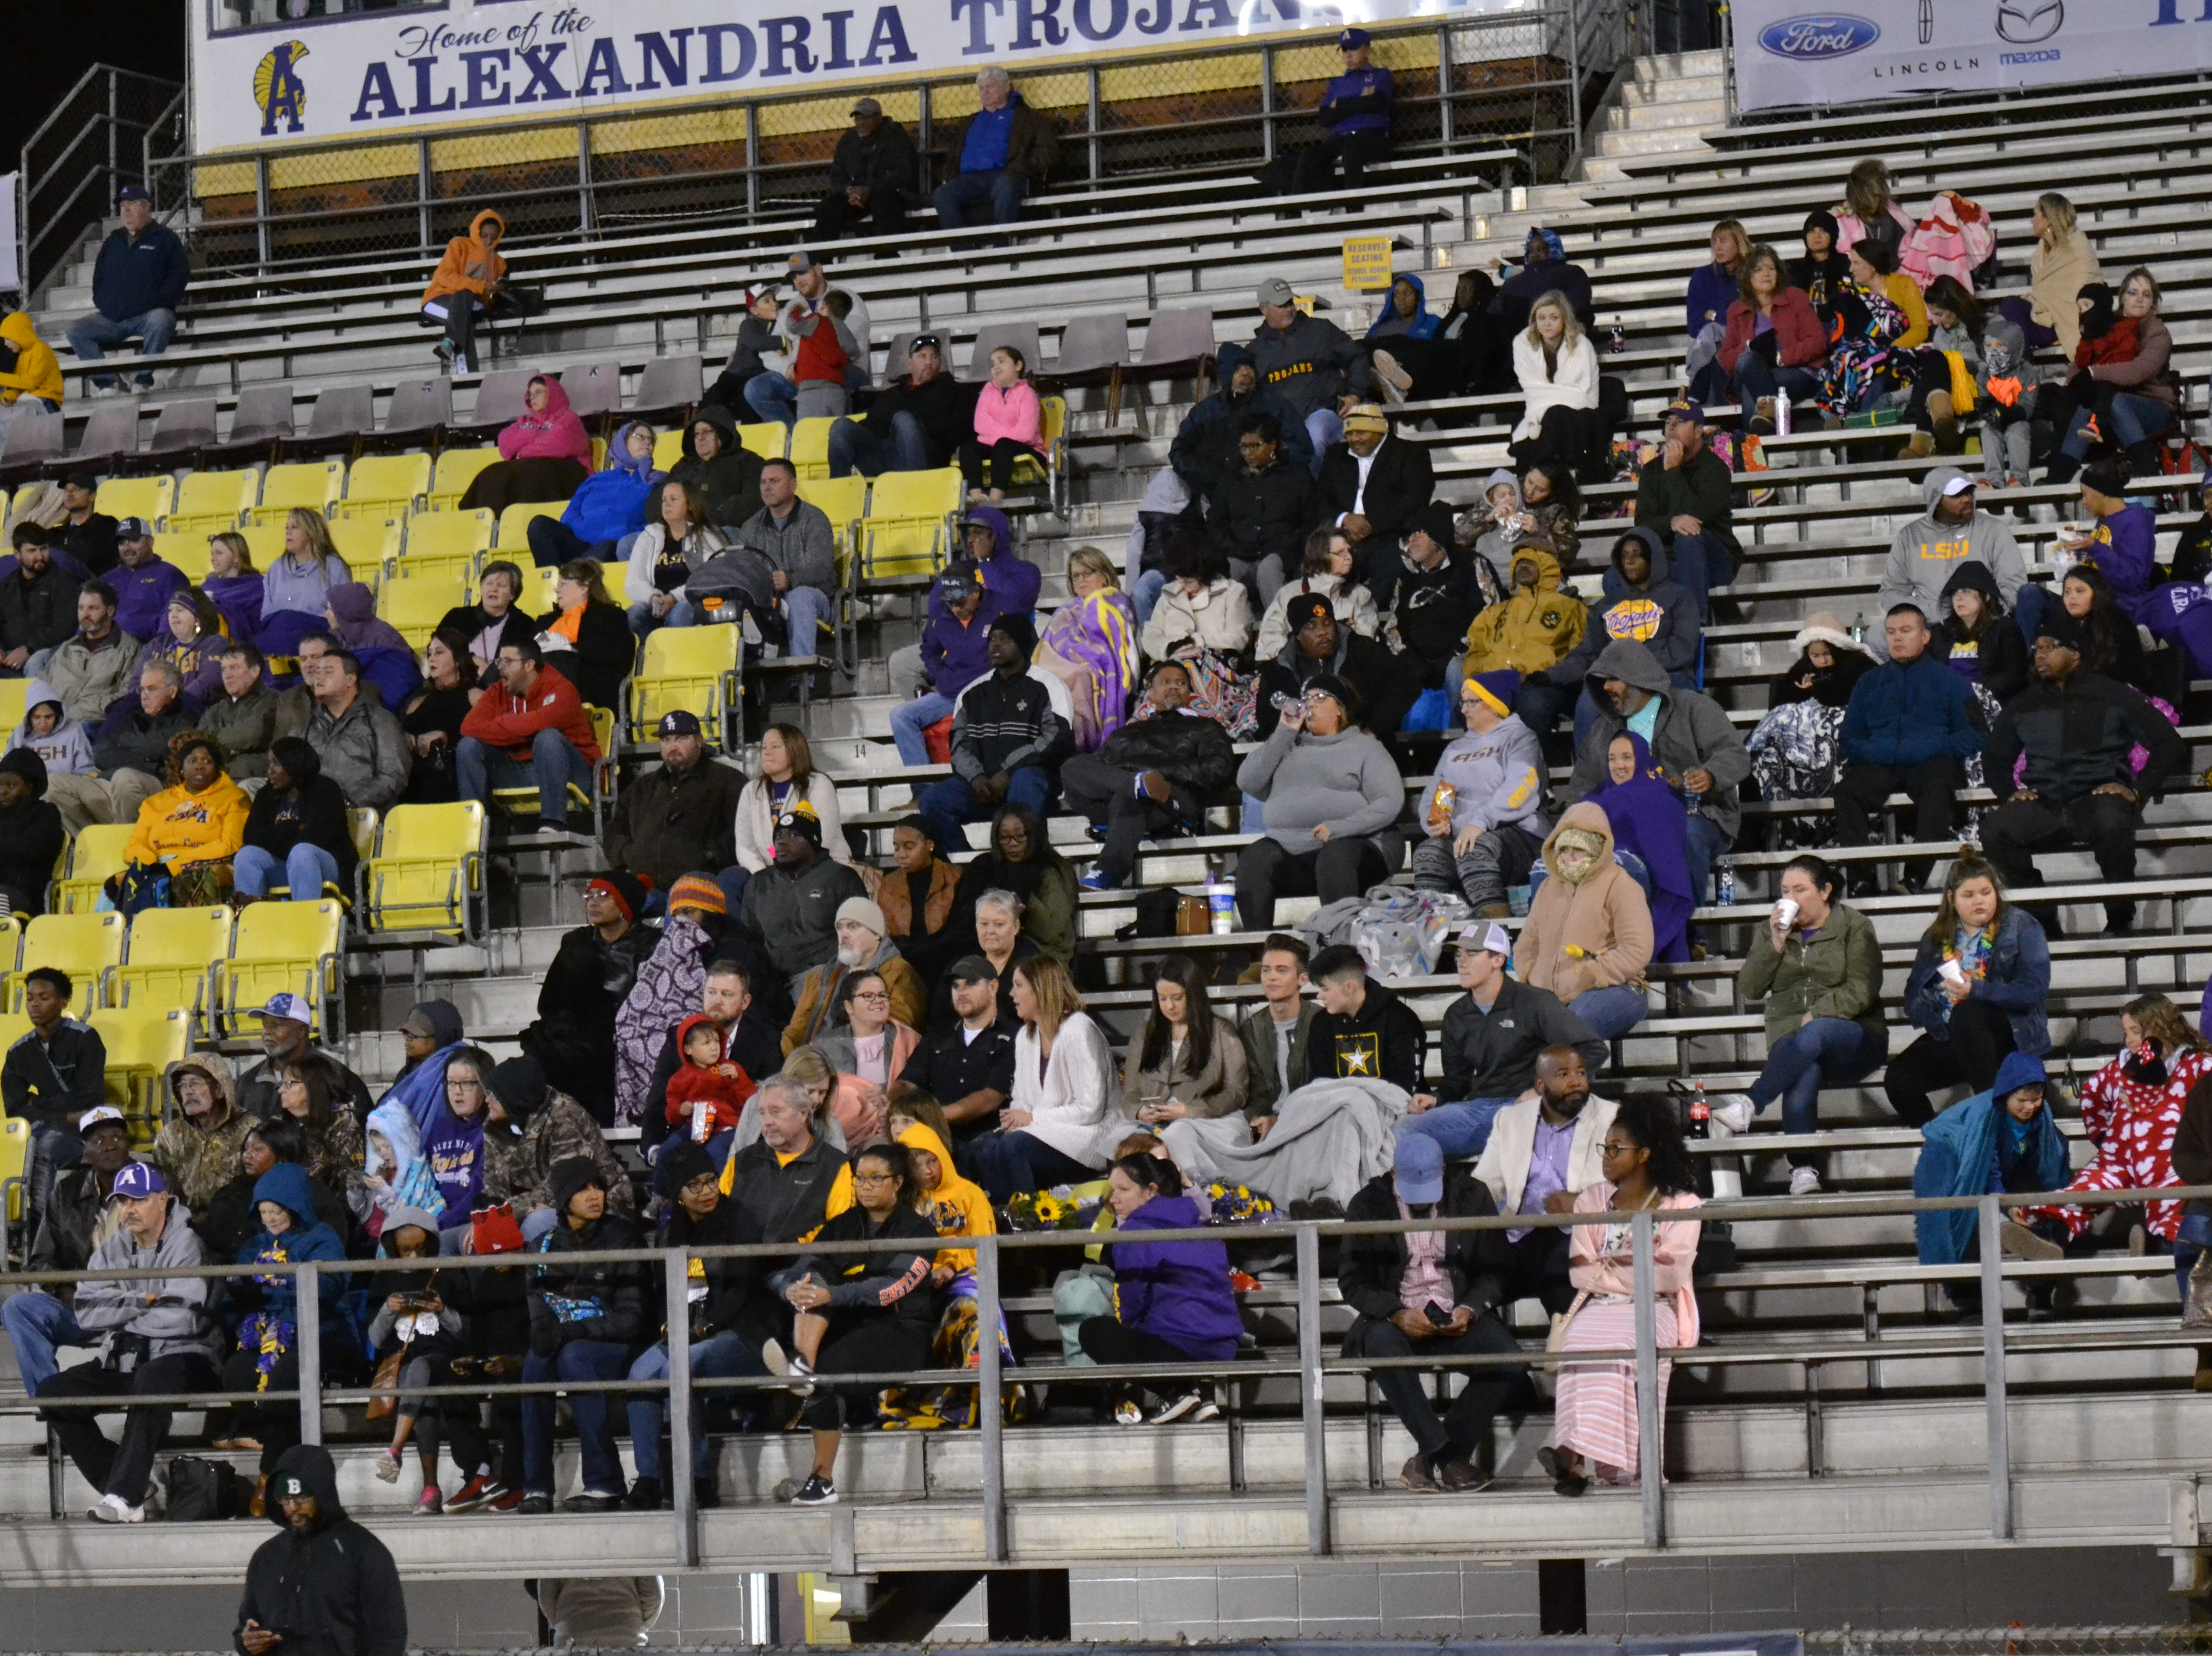 ASH fans try to stay warm on a chilly night. The ASH Trojans fell to the Ouachita Parish Lions 42-20 Thursday, Nov. 1, at Alexandria Senior High.